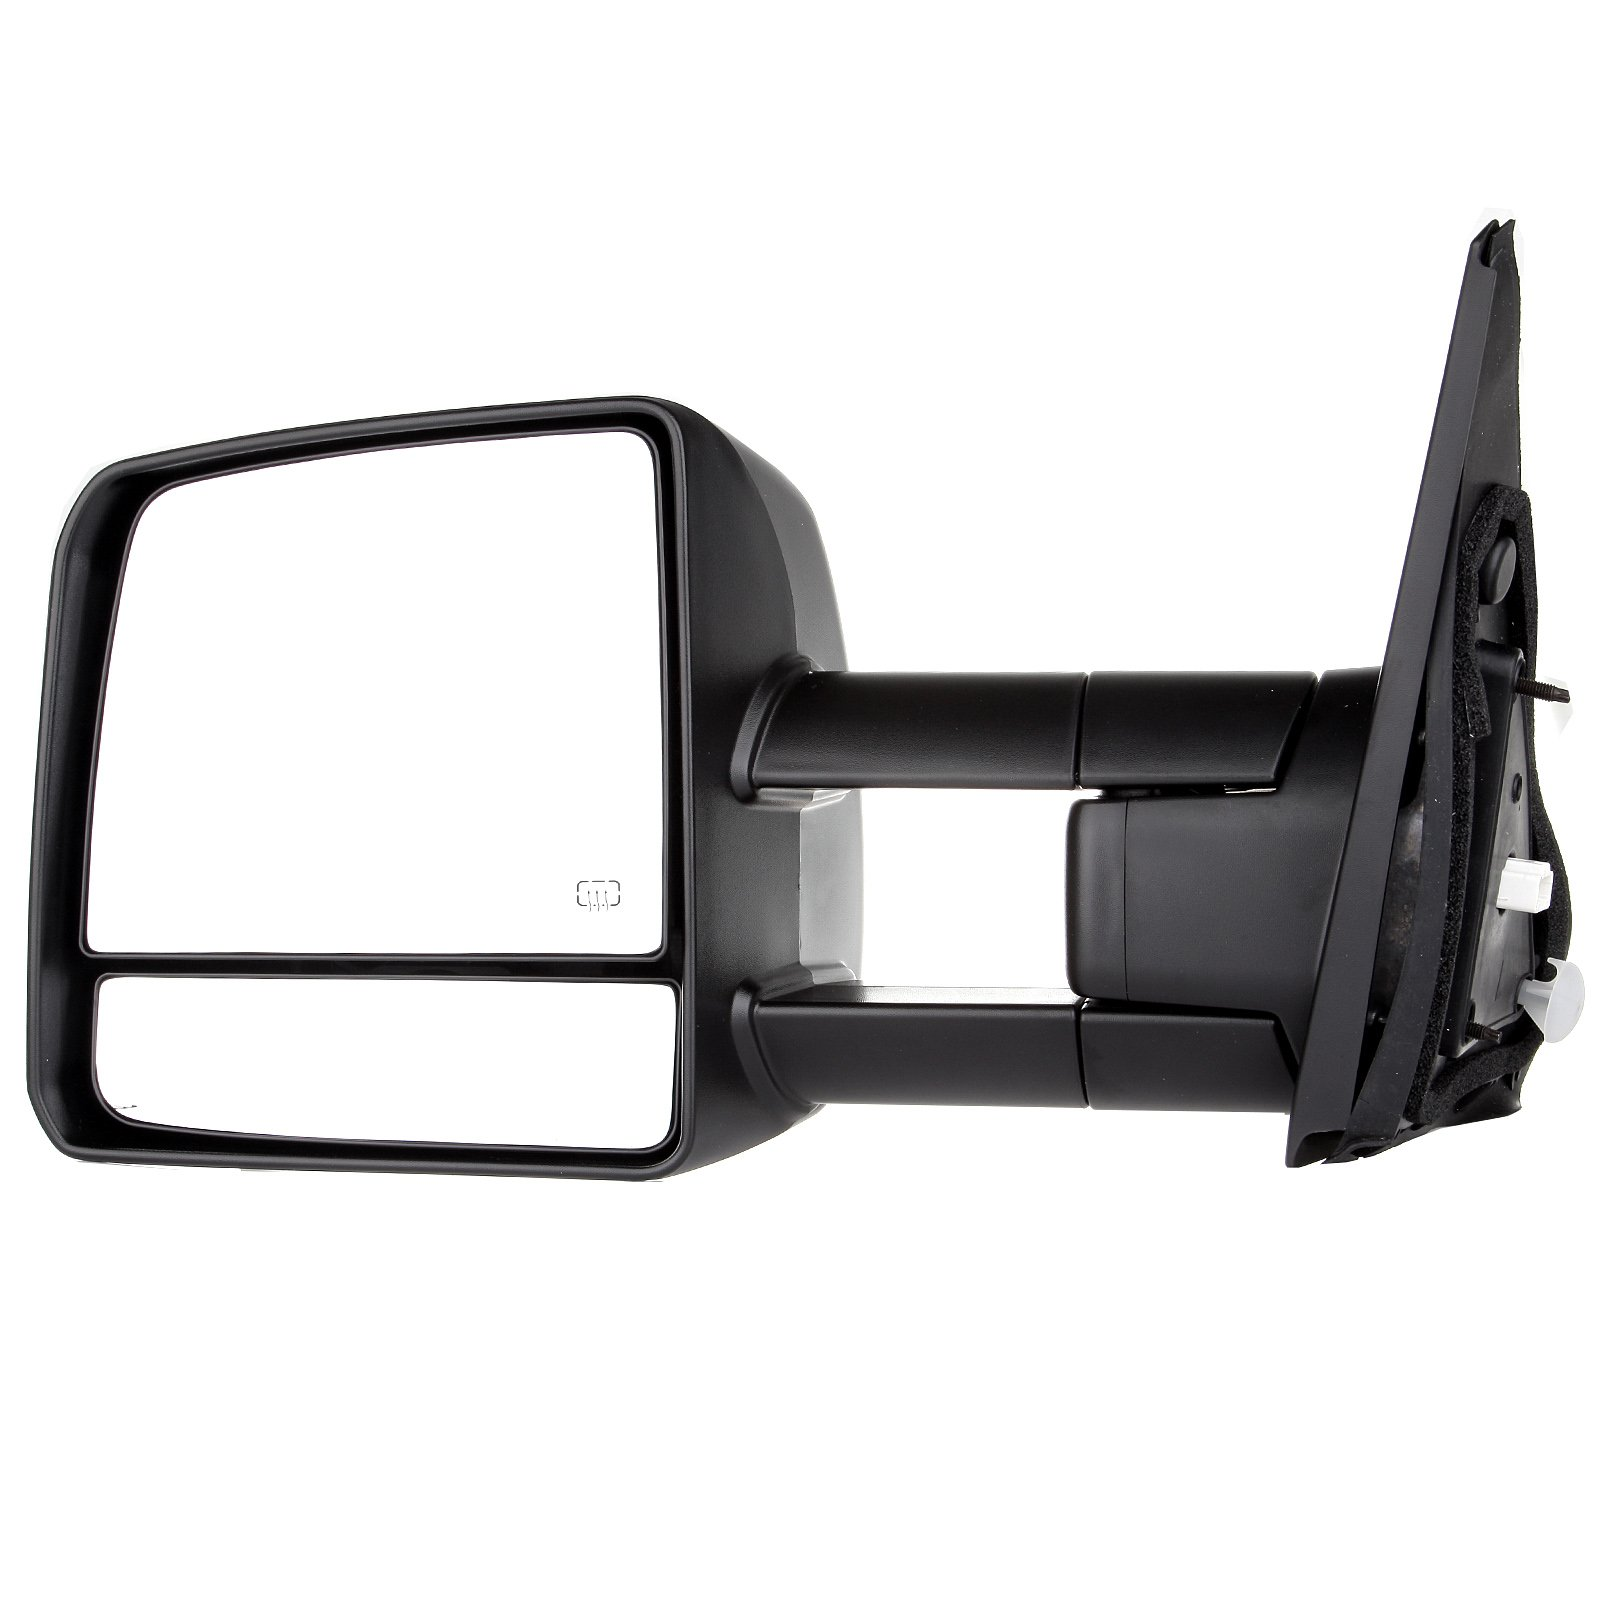 SCITOO for Toyota Towing Mirrors High Performance Driver Side Automotive Exterior Mirrors for 07-16 Toyota Tundra with Turn Signal Heated and Power Control Features by SCITOO